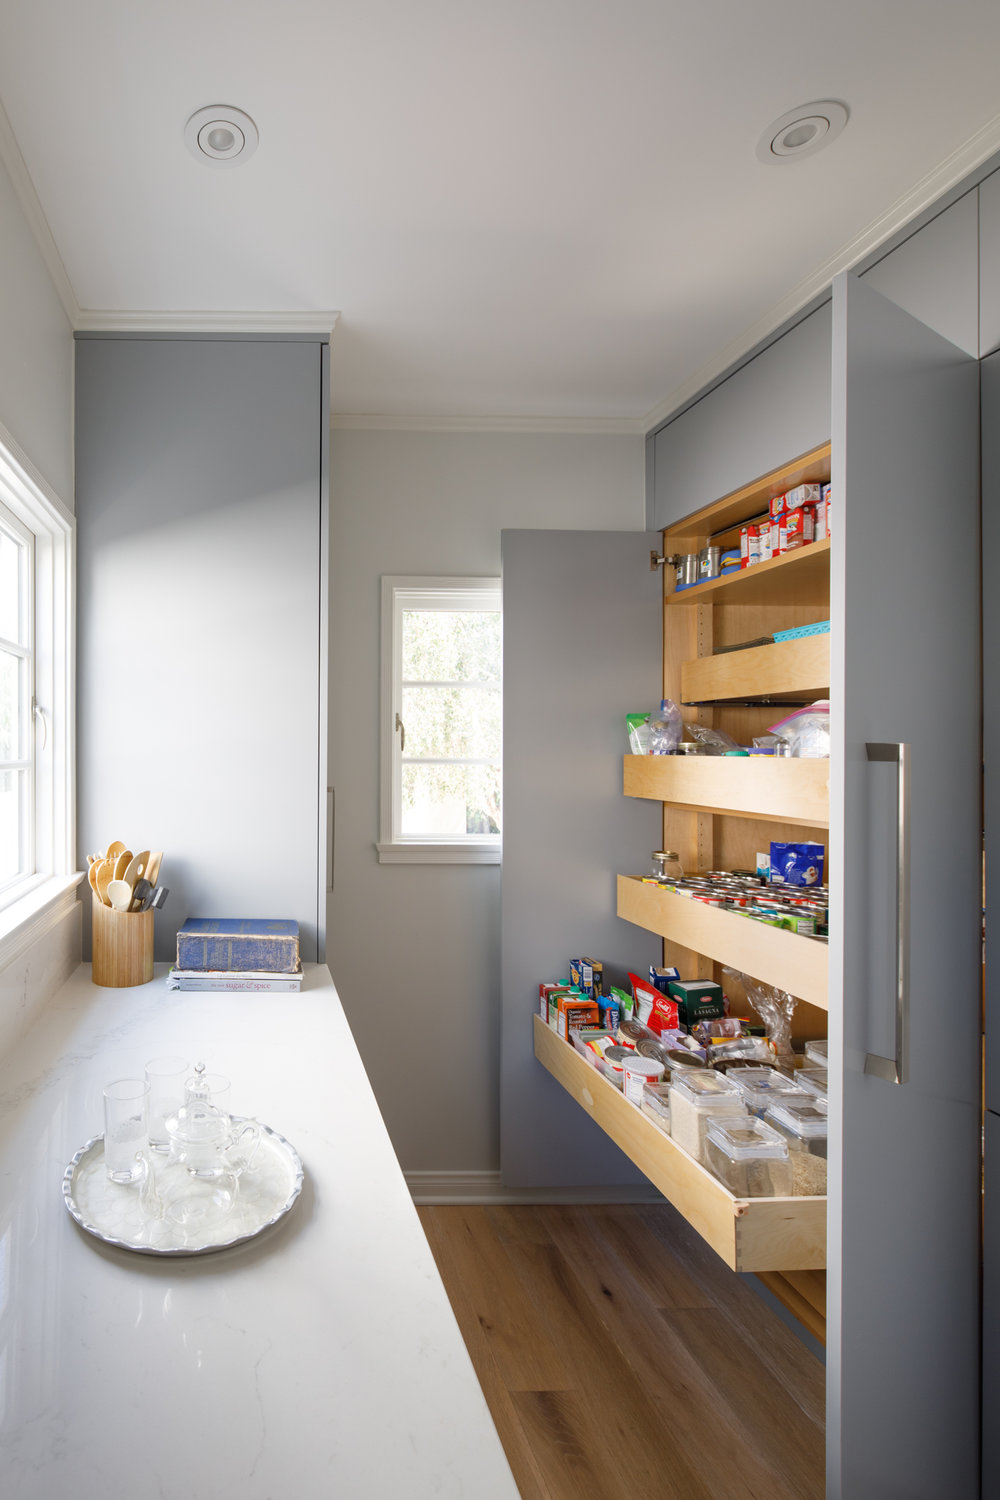 CUSTOM HEAVY DUTY PULL-OUT PANTRY SHELVES